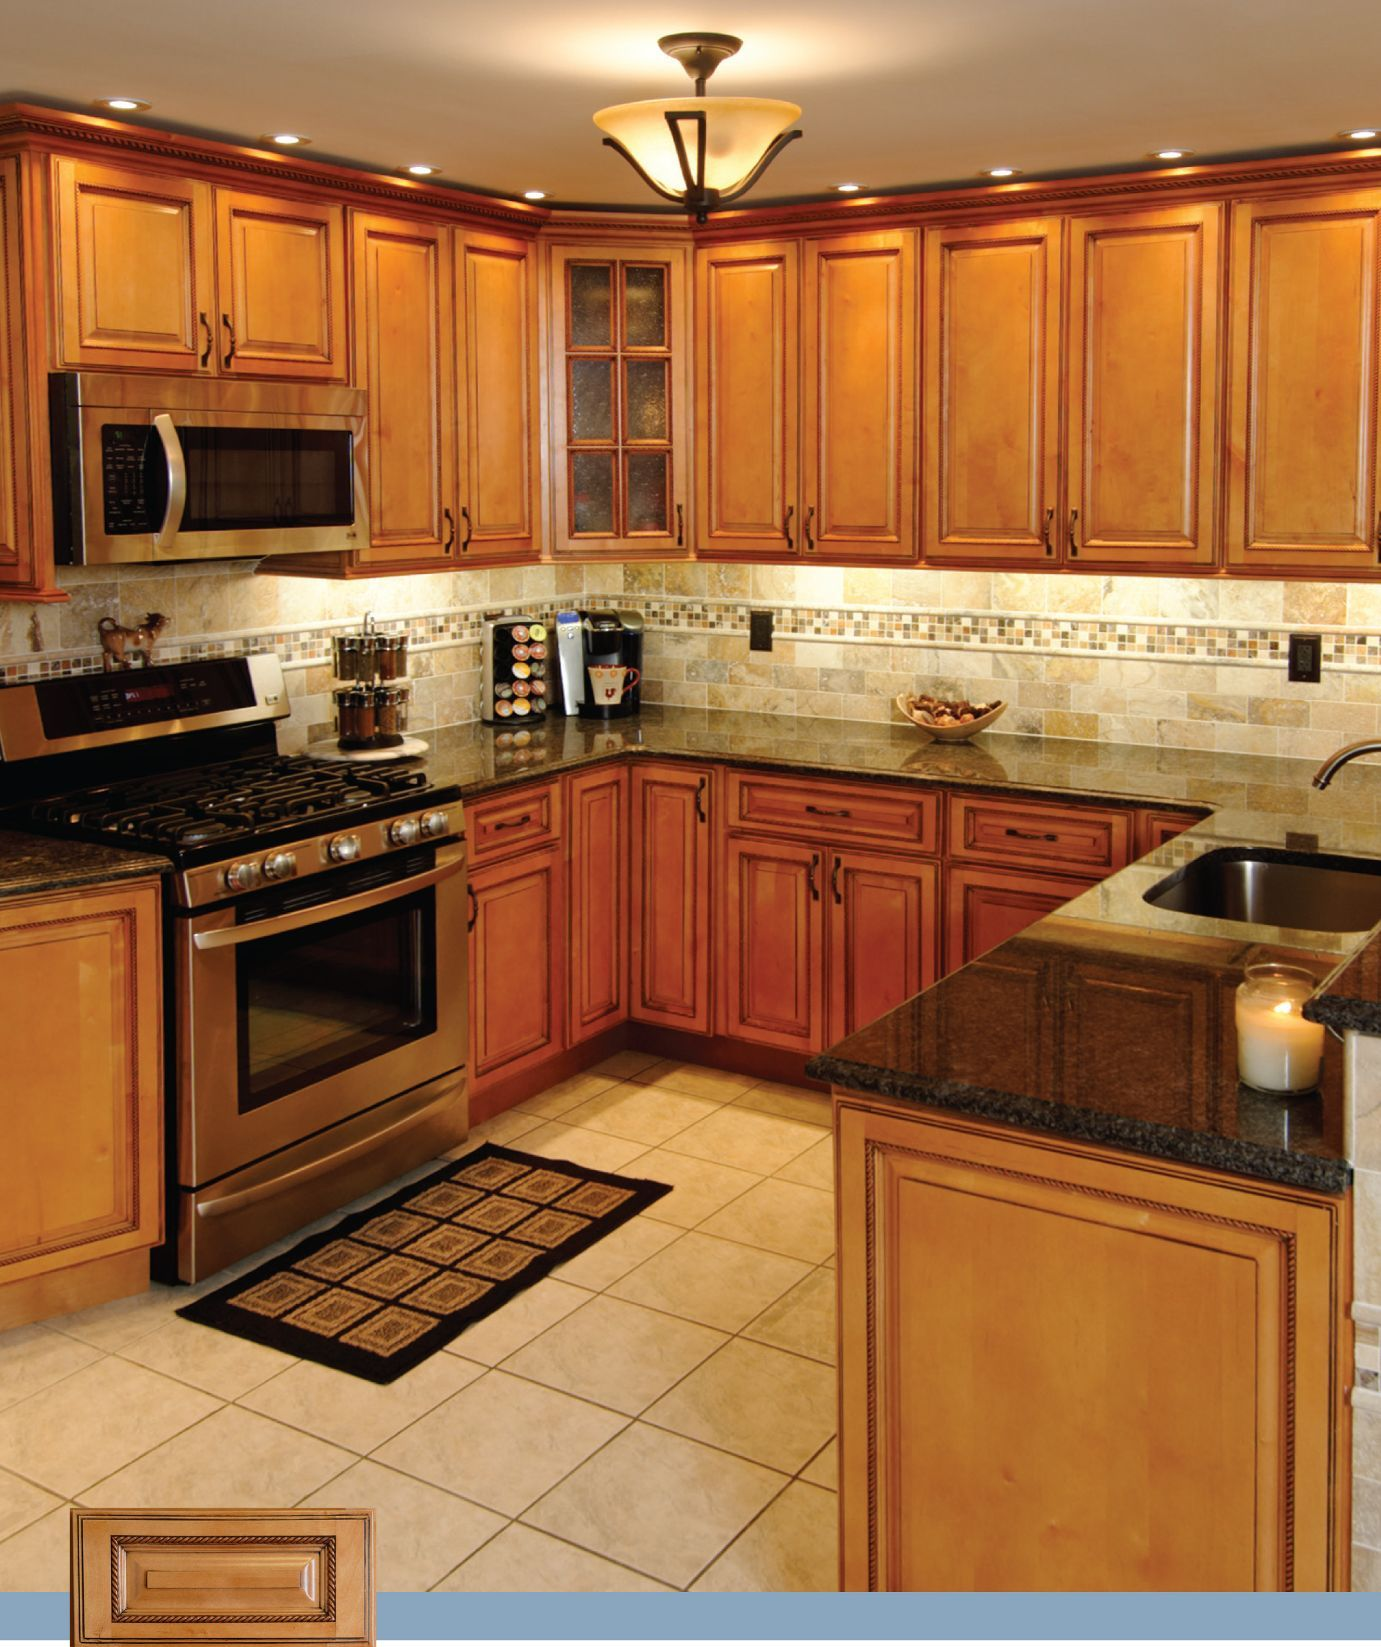 Kitchen Design Ideas Light Cabinets google image result for http://www.kitchencabinetdiscounts